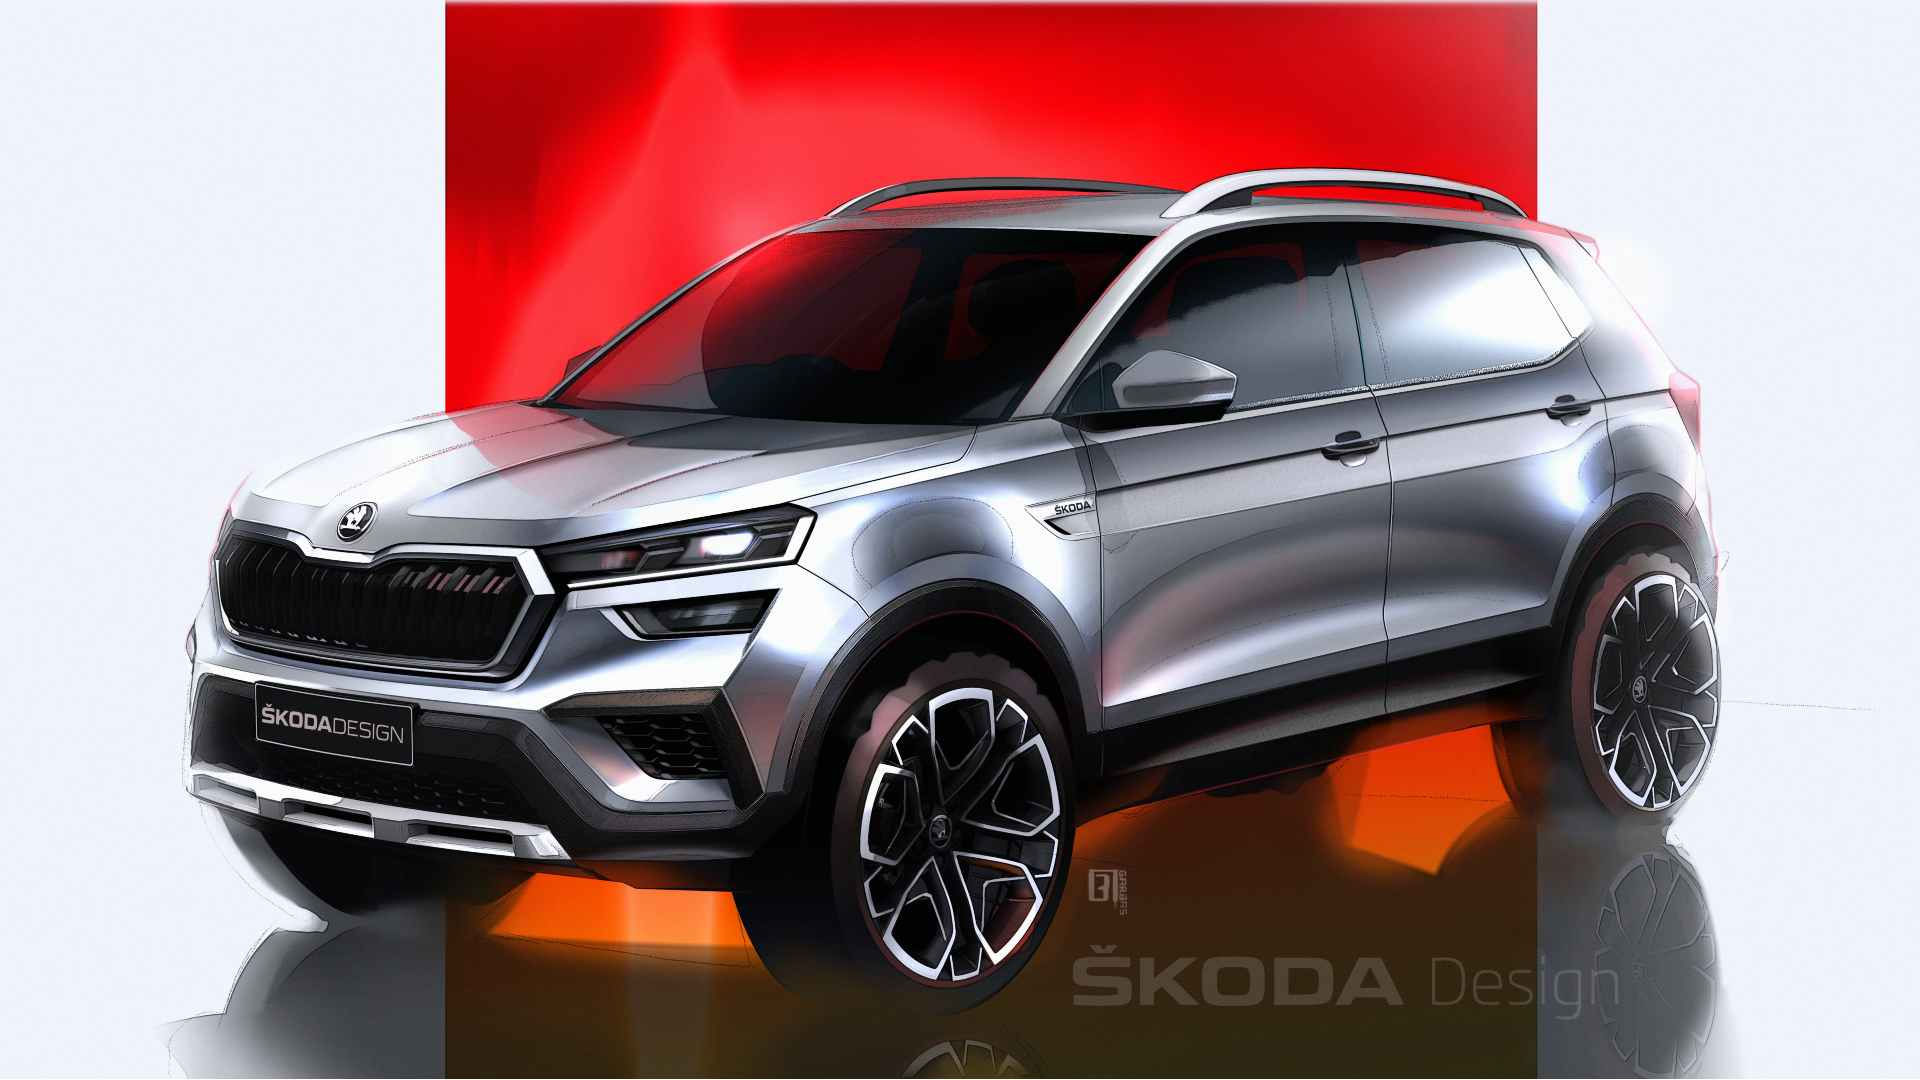 The production-spec Skoda Kushaq will retain most of the Vision IN concept's design. Image: Skoda